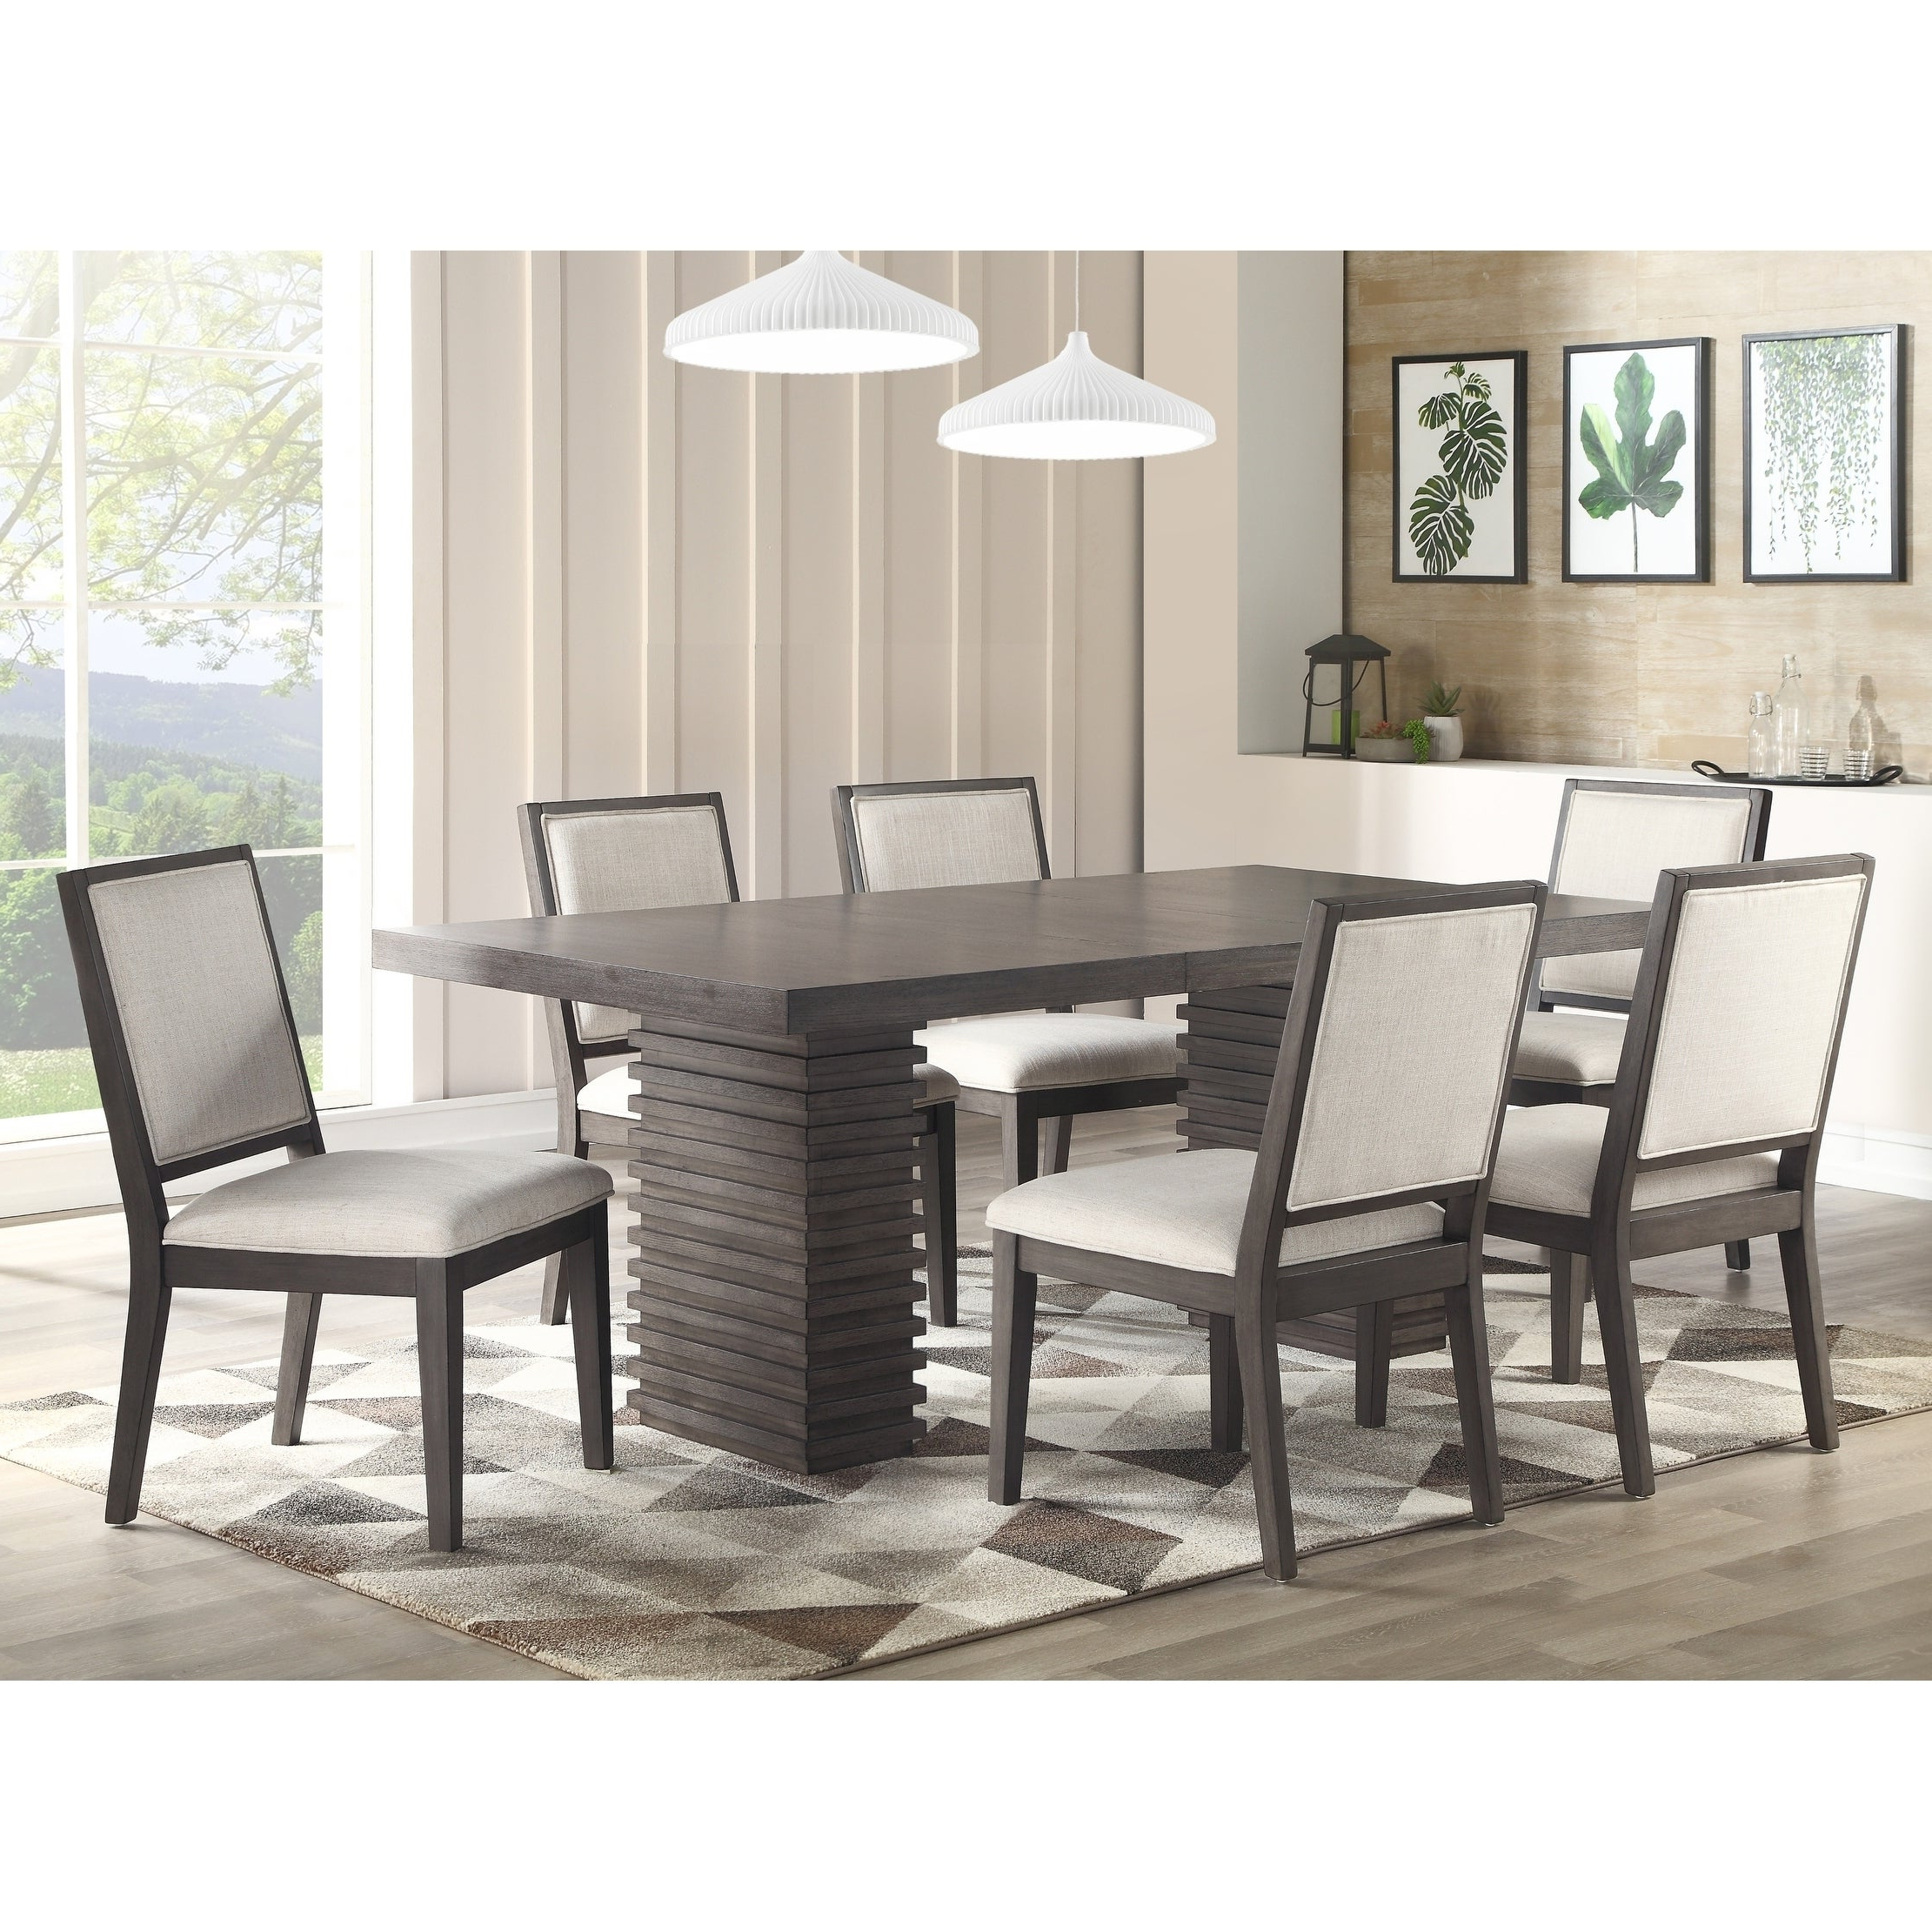 Buy 7 Piece Sets Kitchen & Dining Room Sets Online At Overstock Inside Well Liked Autberry 5 Piece Dining Sets (View 7 of 25)